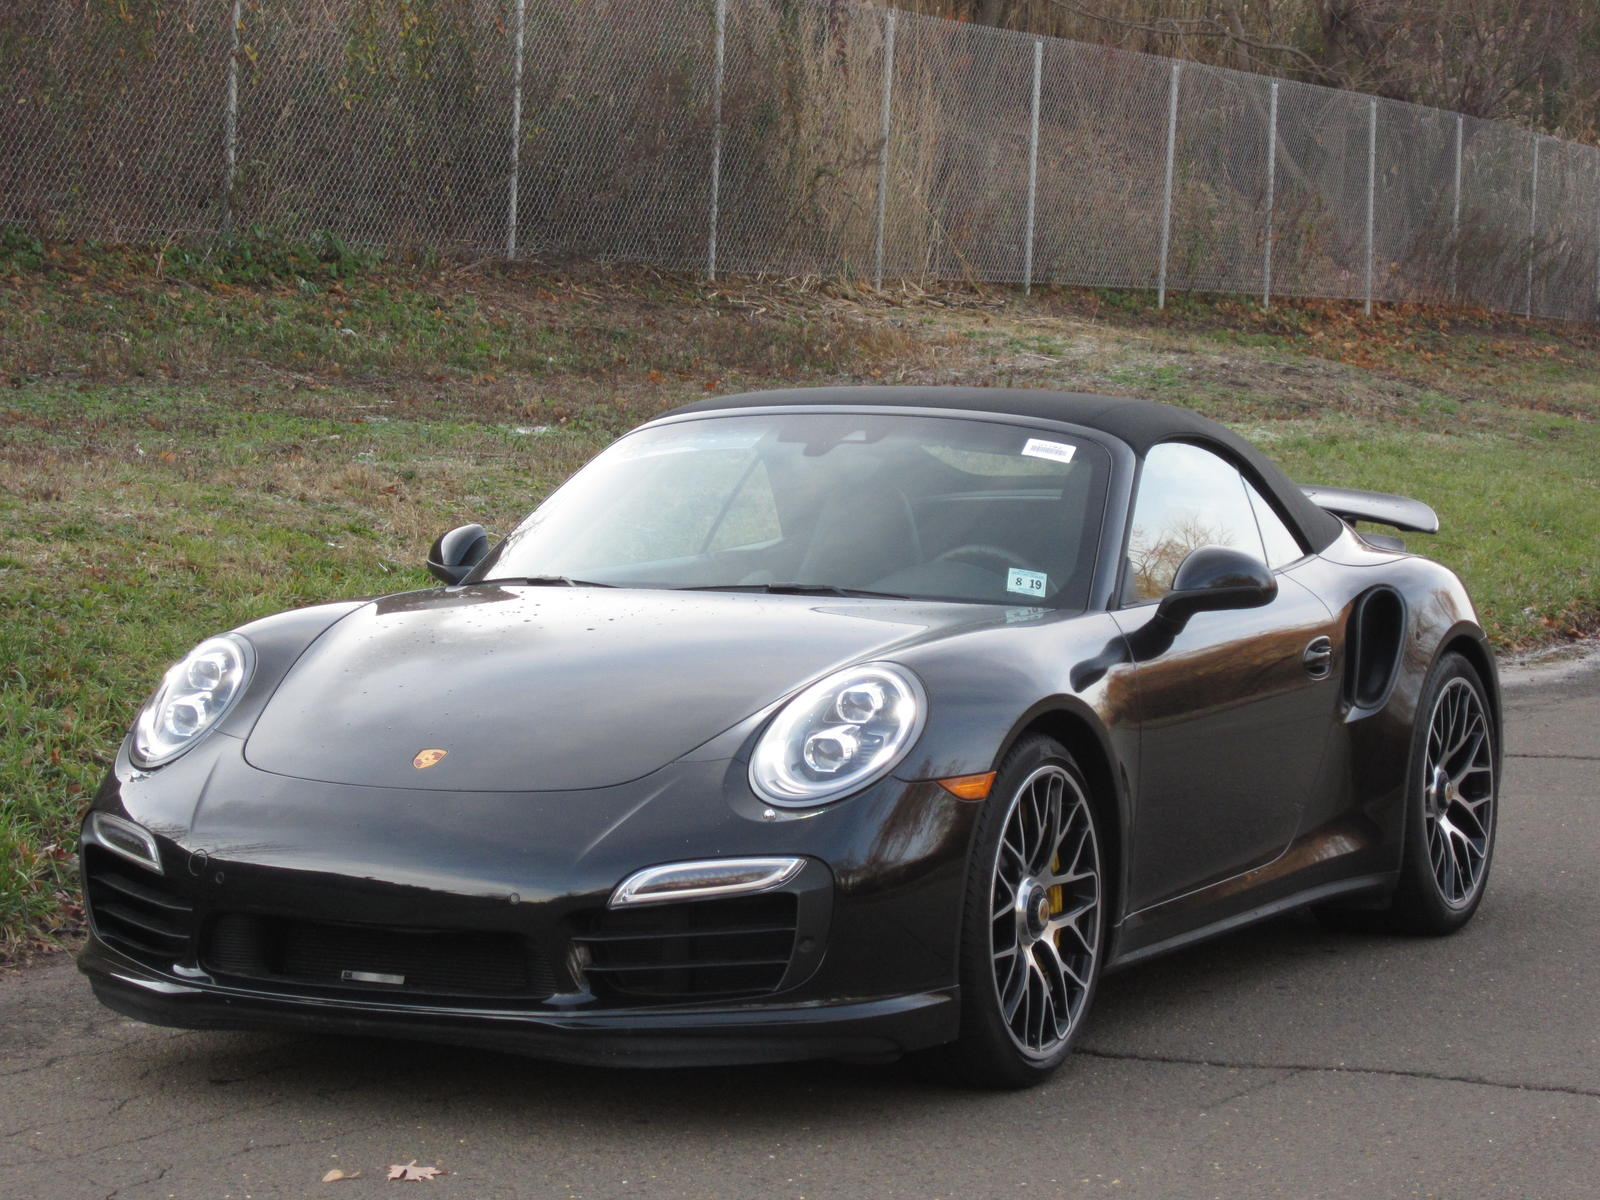 Dealer Inventory Porsche 911 Turbo S Cab